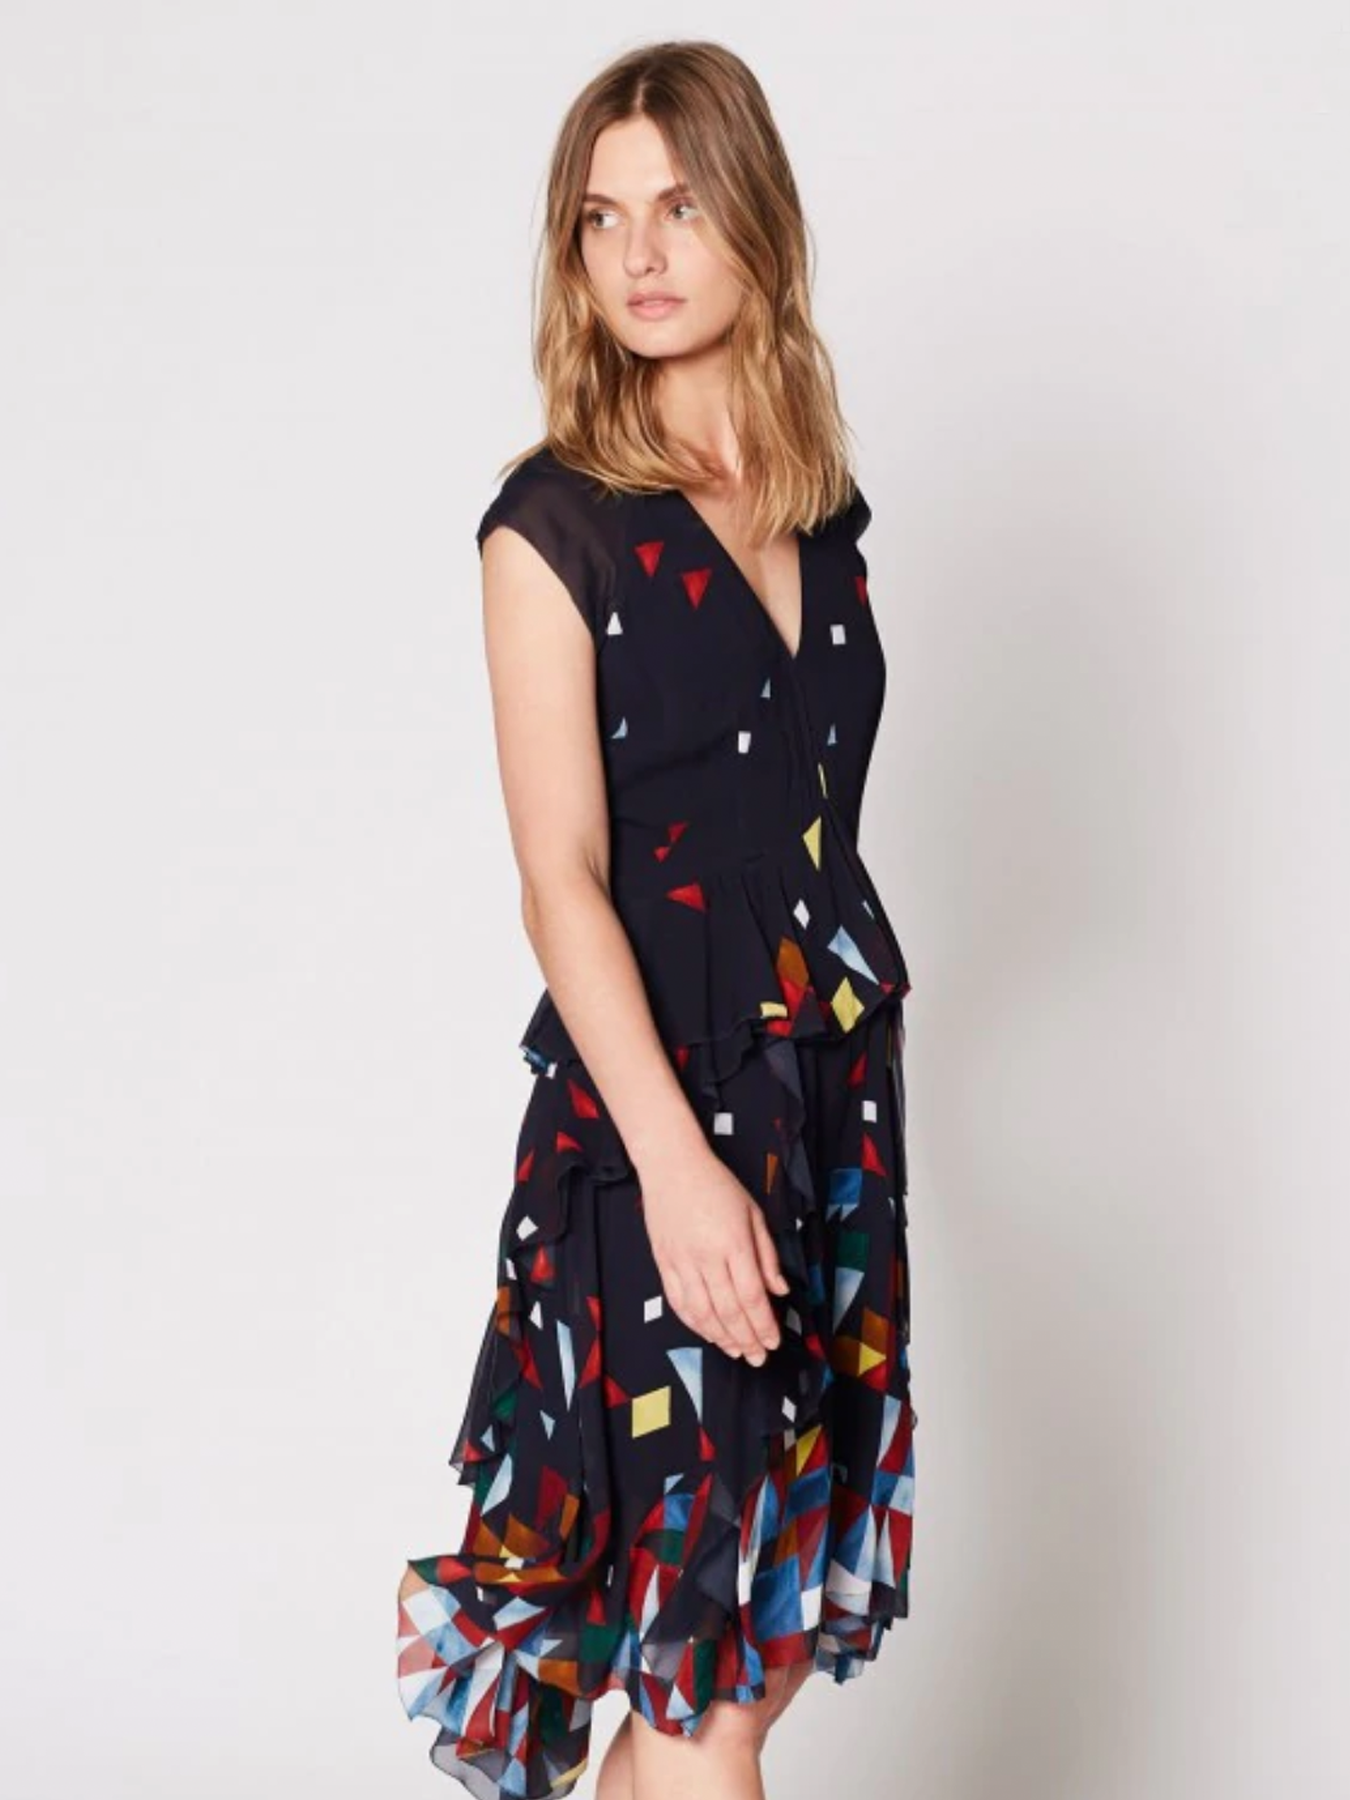 Joie - Kiersten Dress